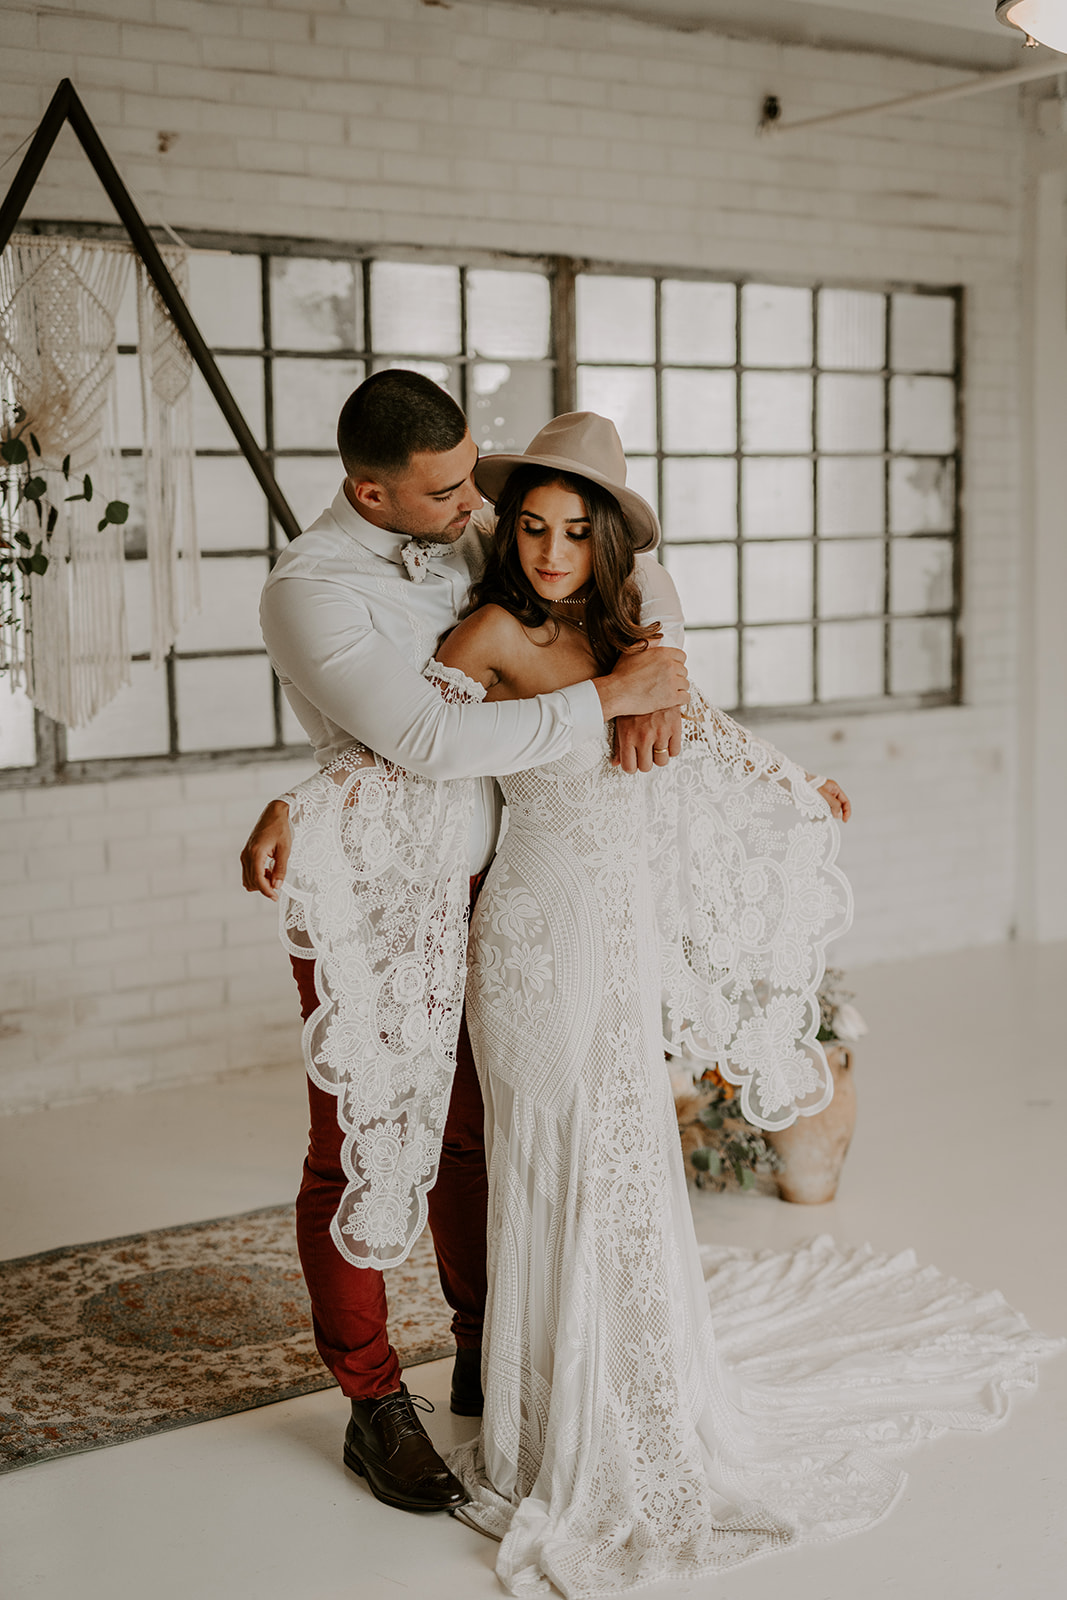 pao-marcus-styled-elopement-207_websize.jpg